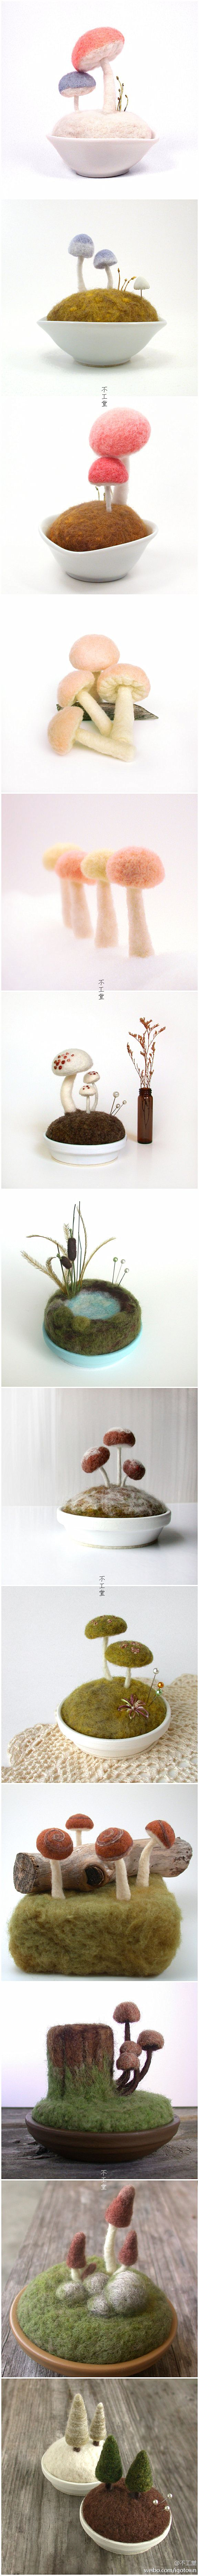 Many of my friends are like mushrooms made with wool felt, Florida Janine established Etsy station Foxtail Creek Studio is specialized in selling her own produce mushrooms bonsai, looks very cute, is not it!